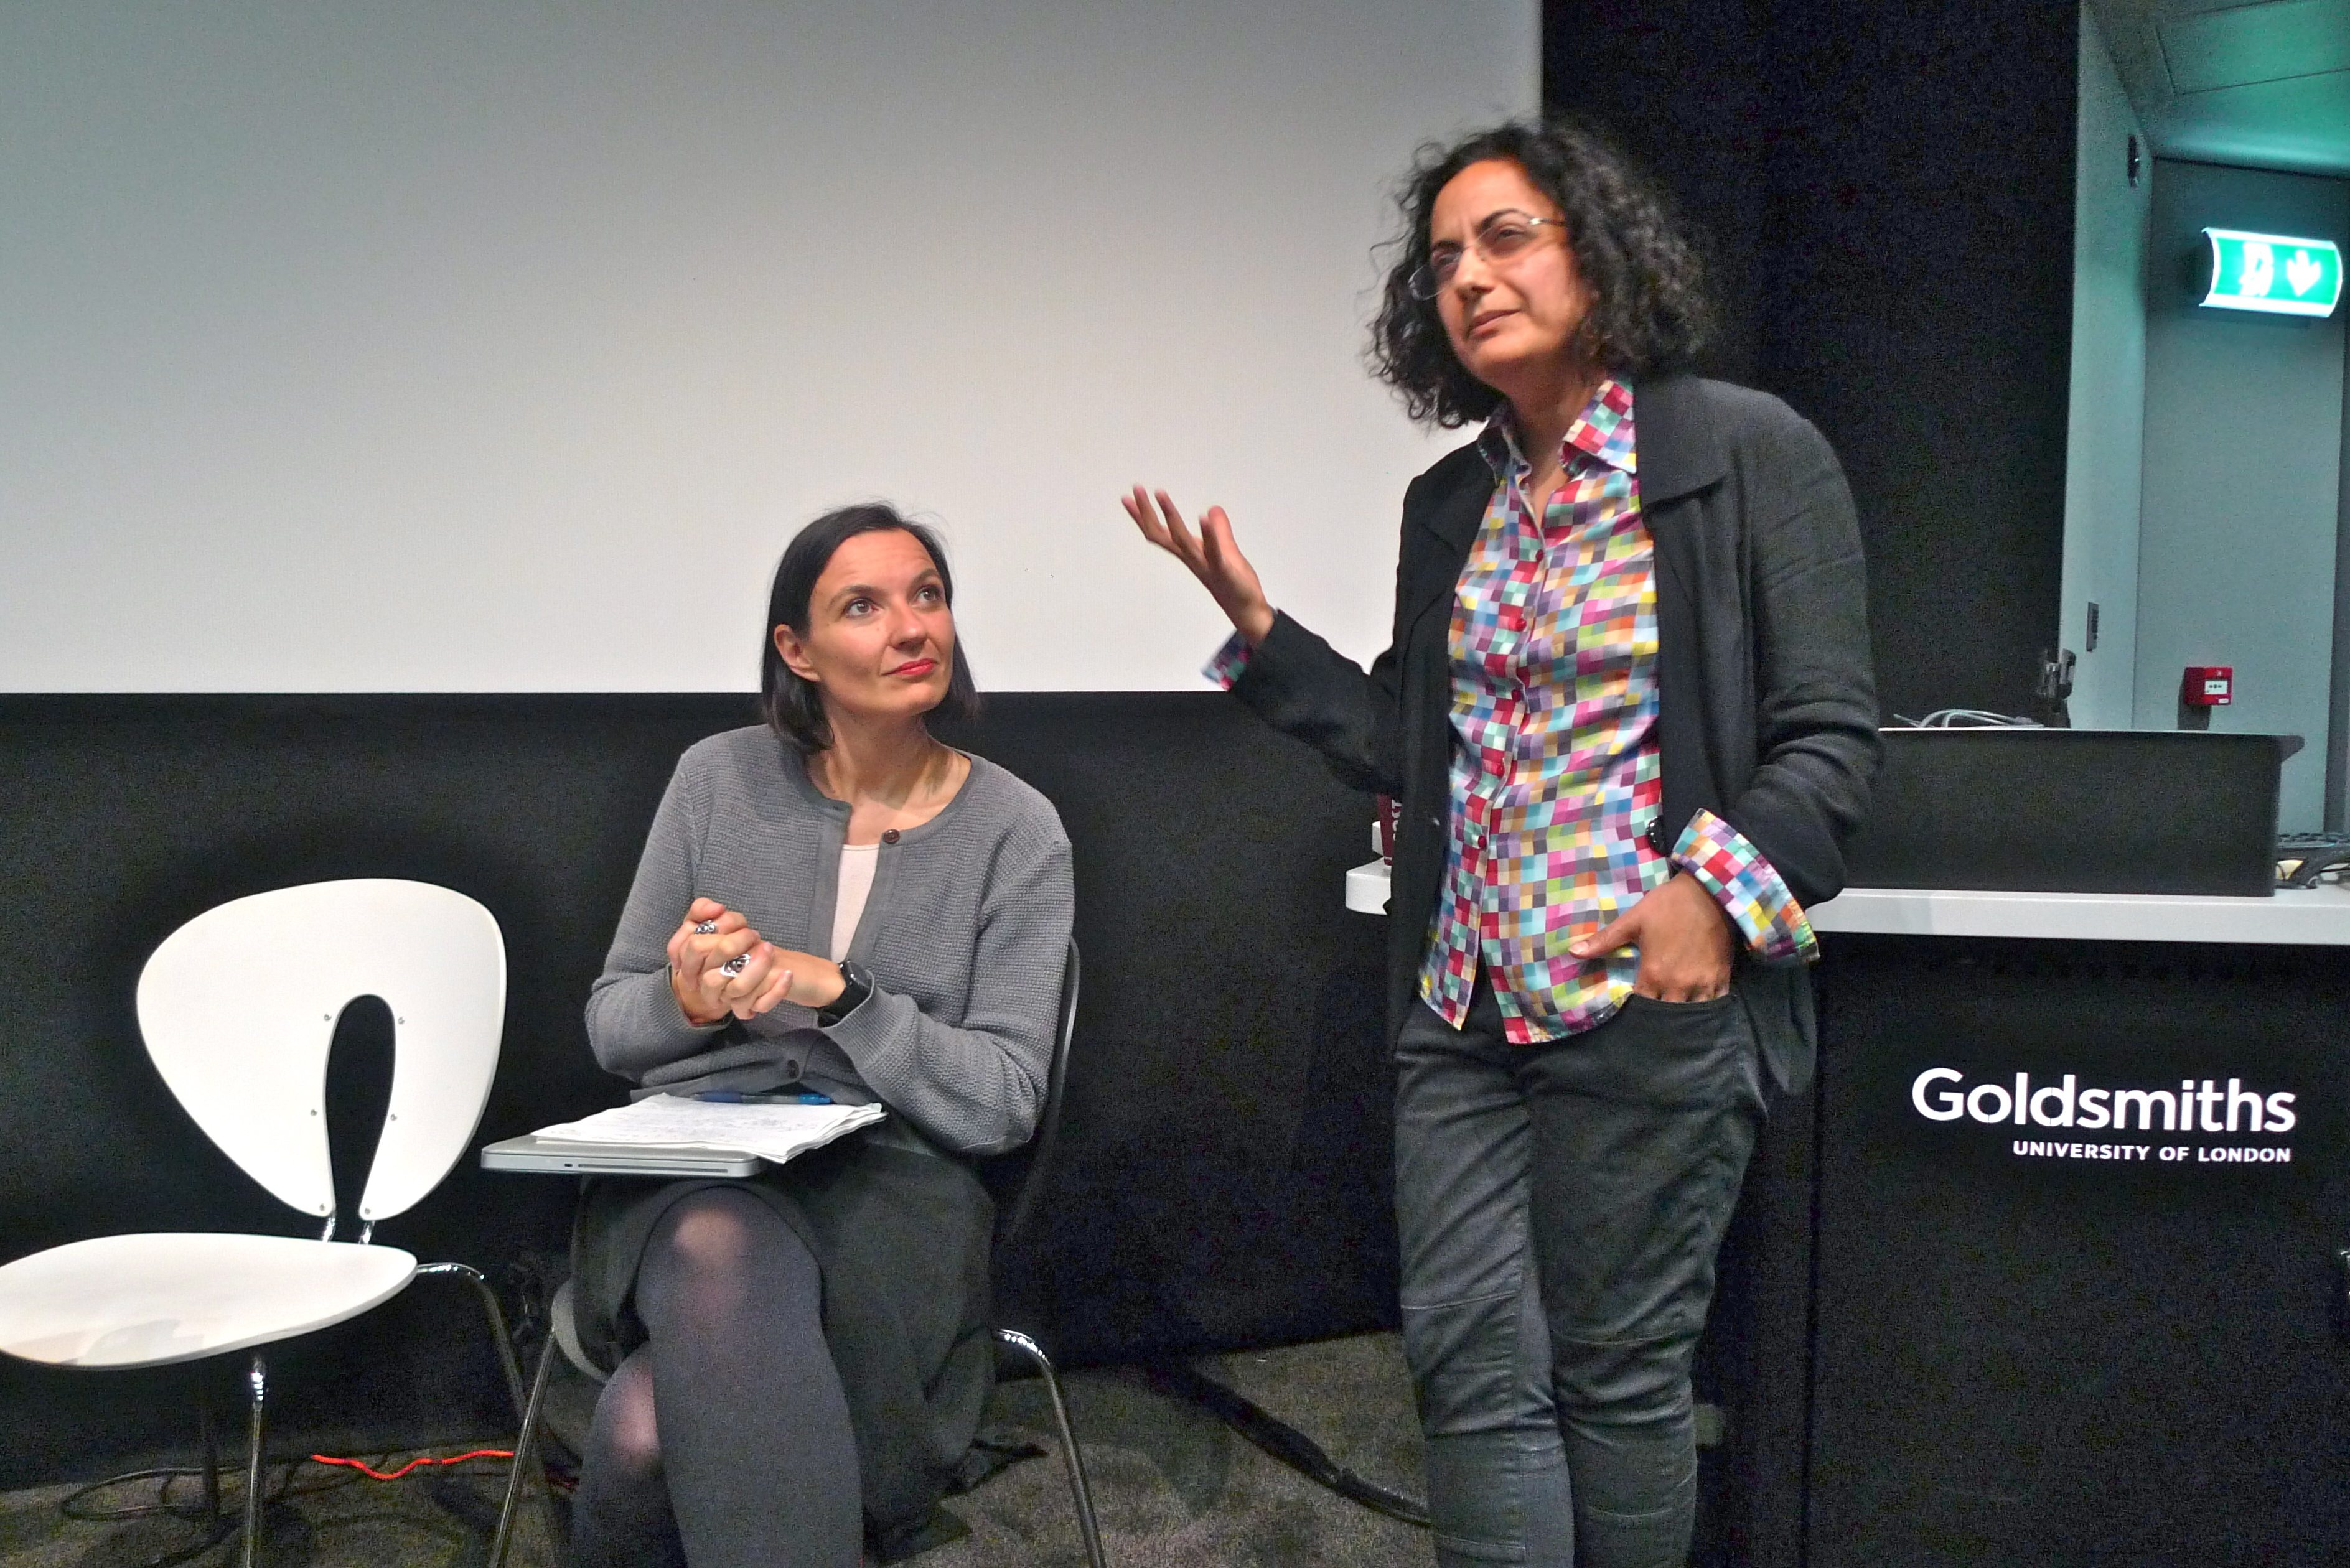 Manuela Bojadzijev and Nirmal Puwar